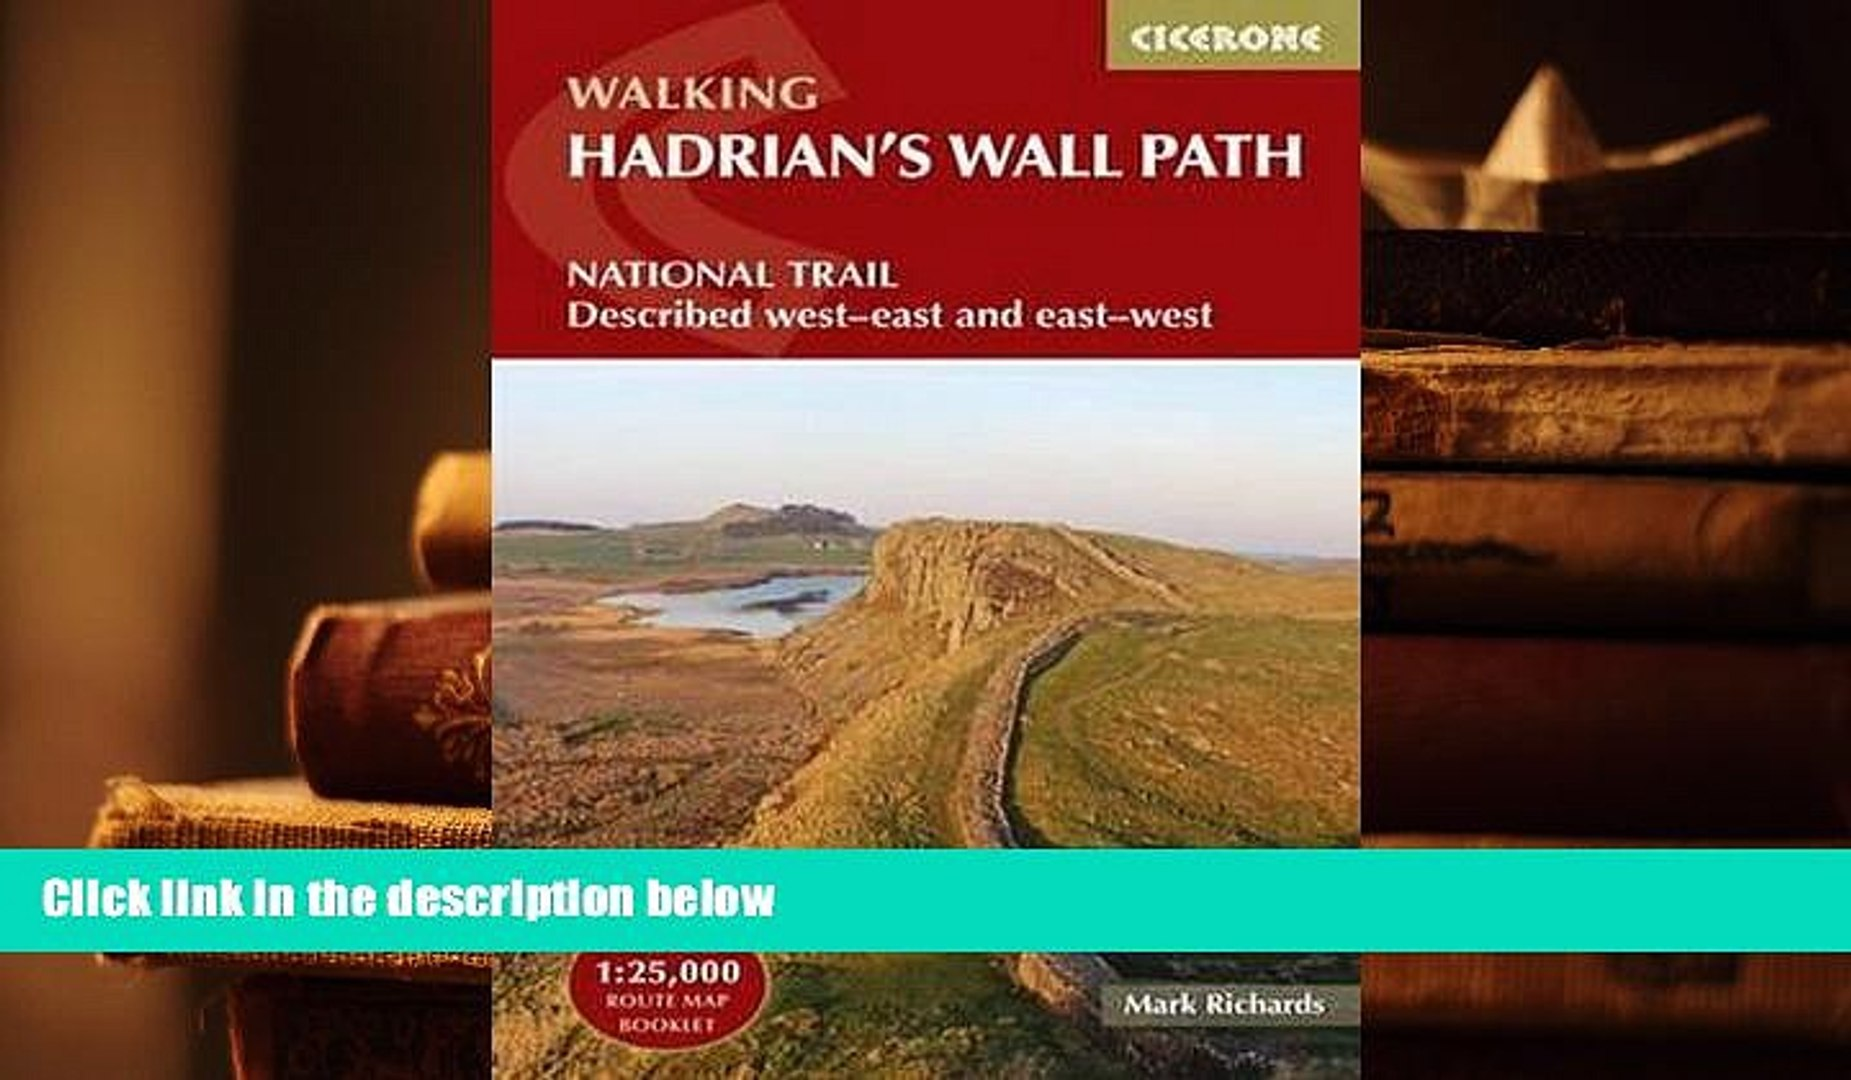 Walking Hadrians Wall Path National Trail Described West-East and East-West